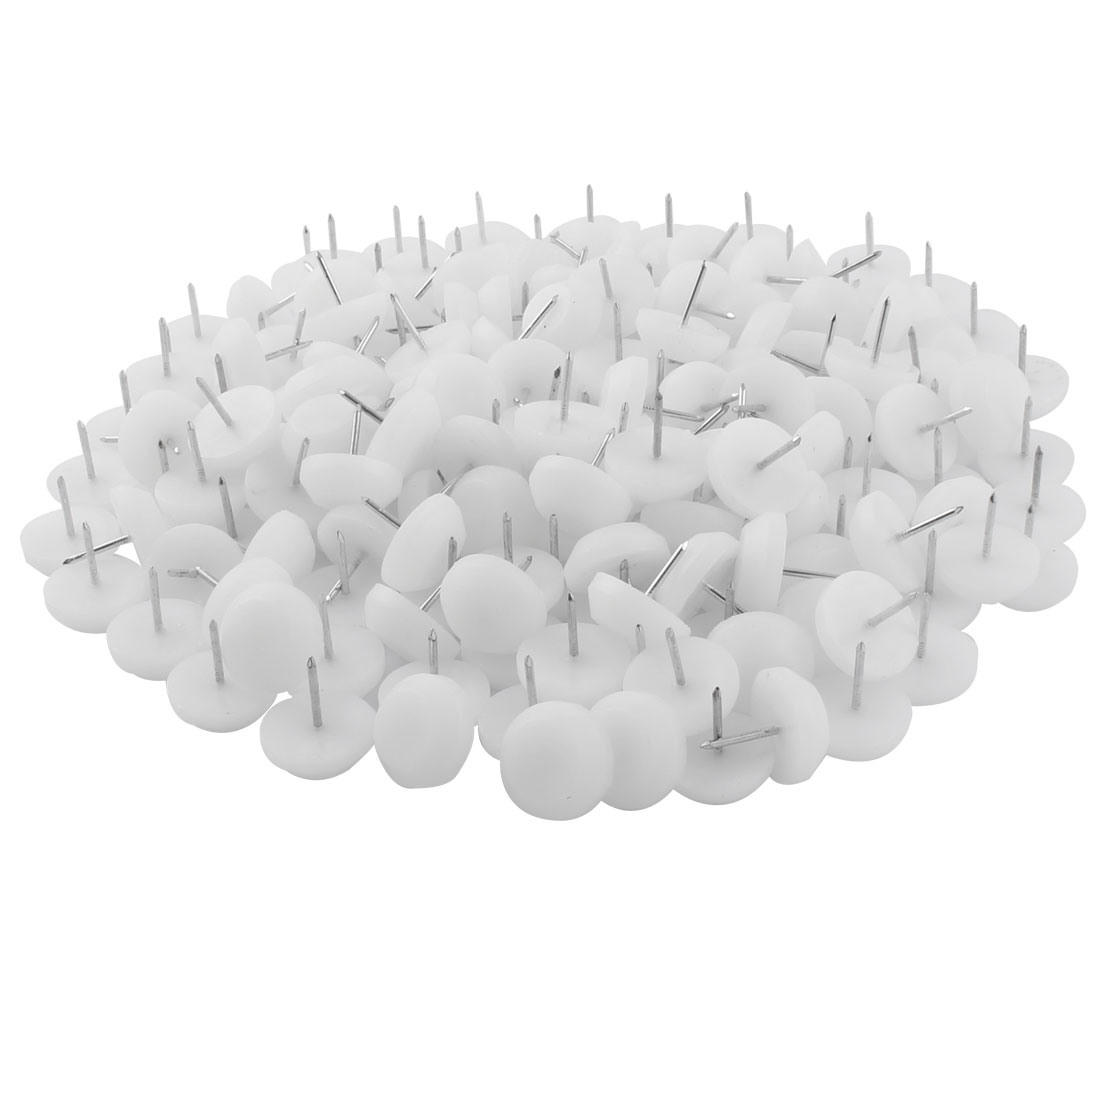 Furniture Table Chair Plastic Base Leg Floor Protector Nails Pad White 2.3cm Dia 200pcs